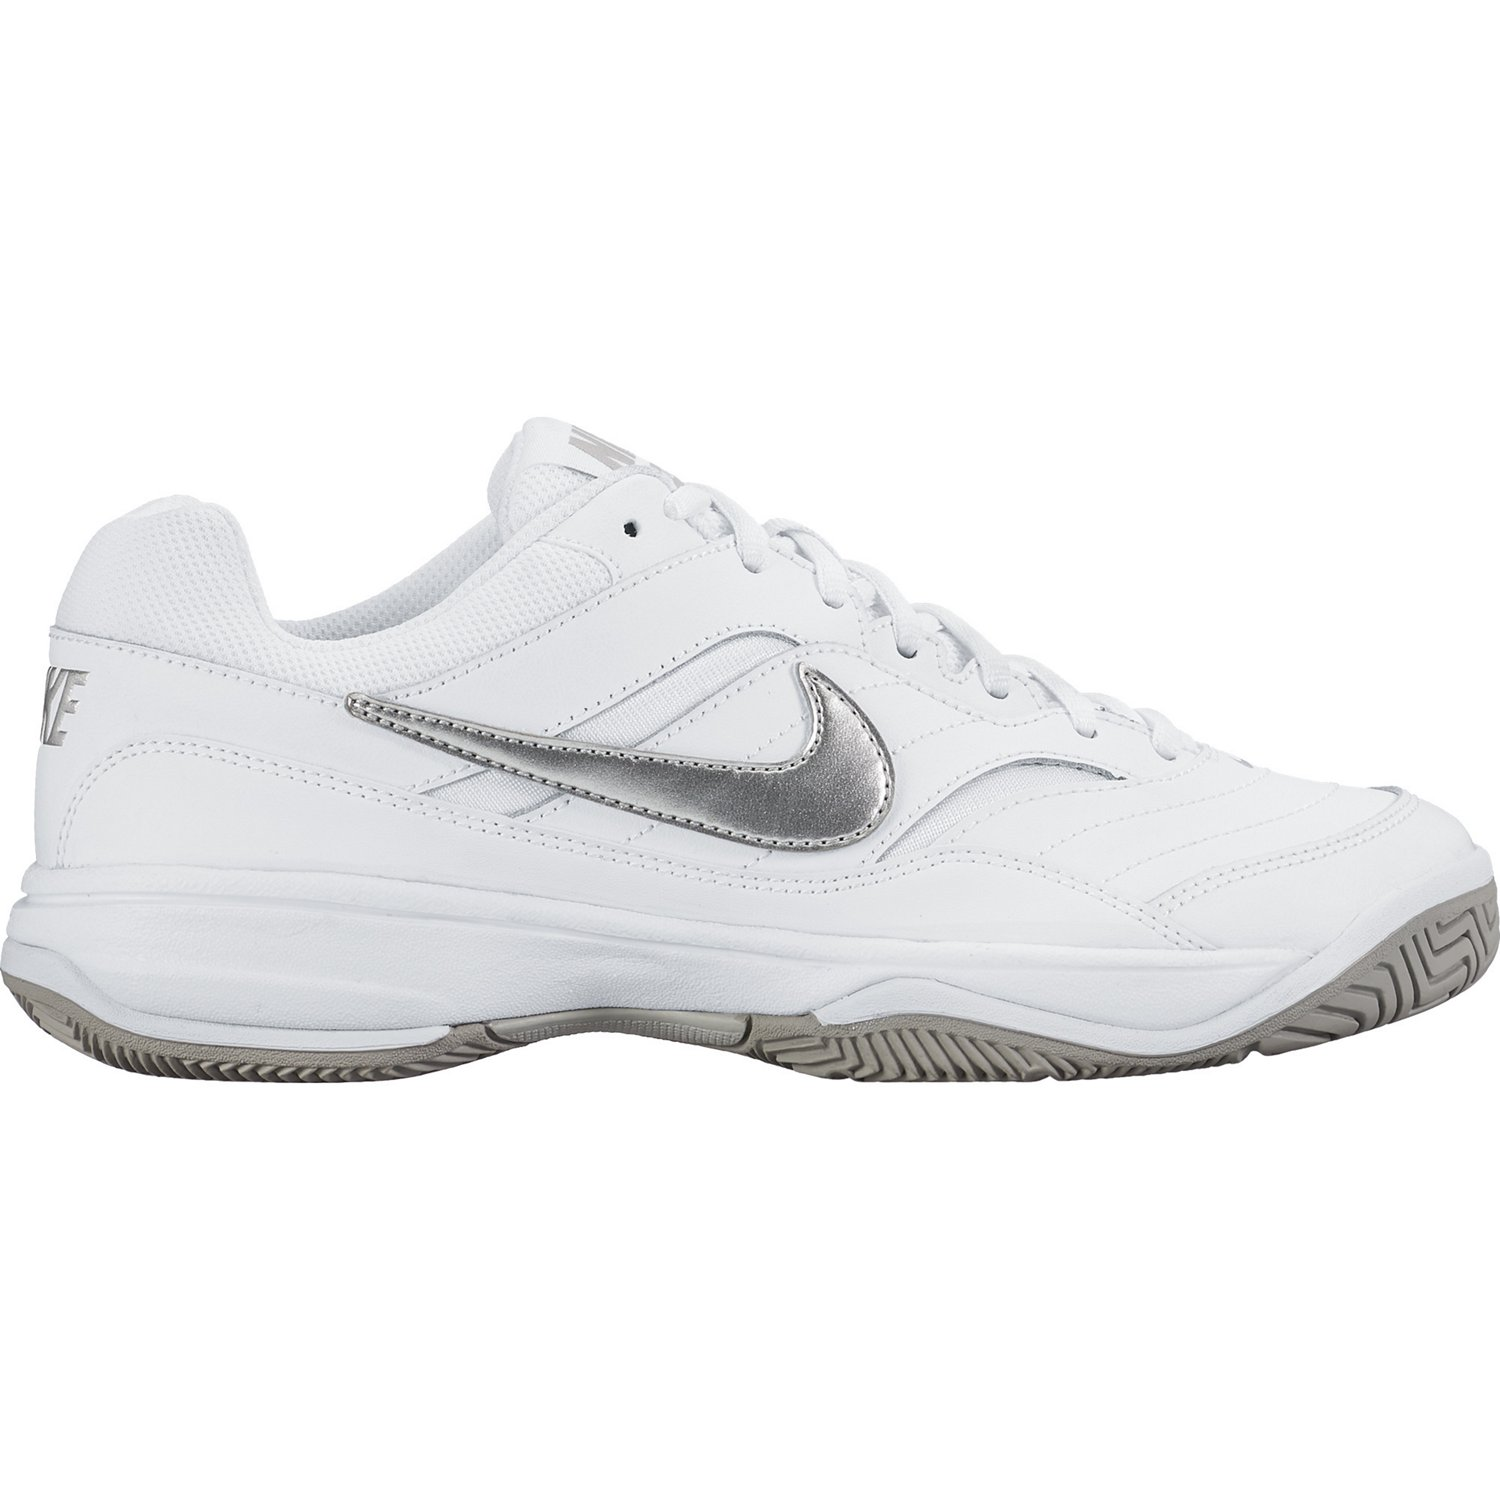 Nike Women's Court Lite Tennis Shoes | Academy